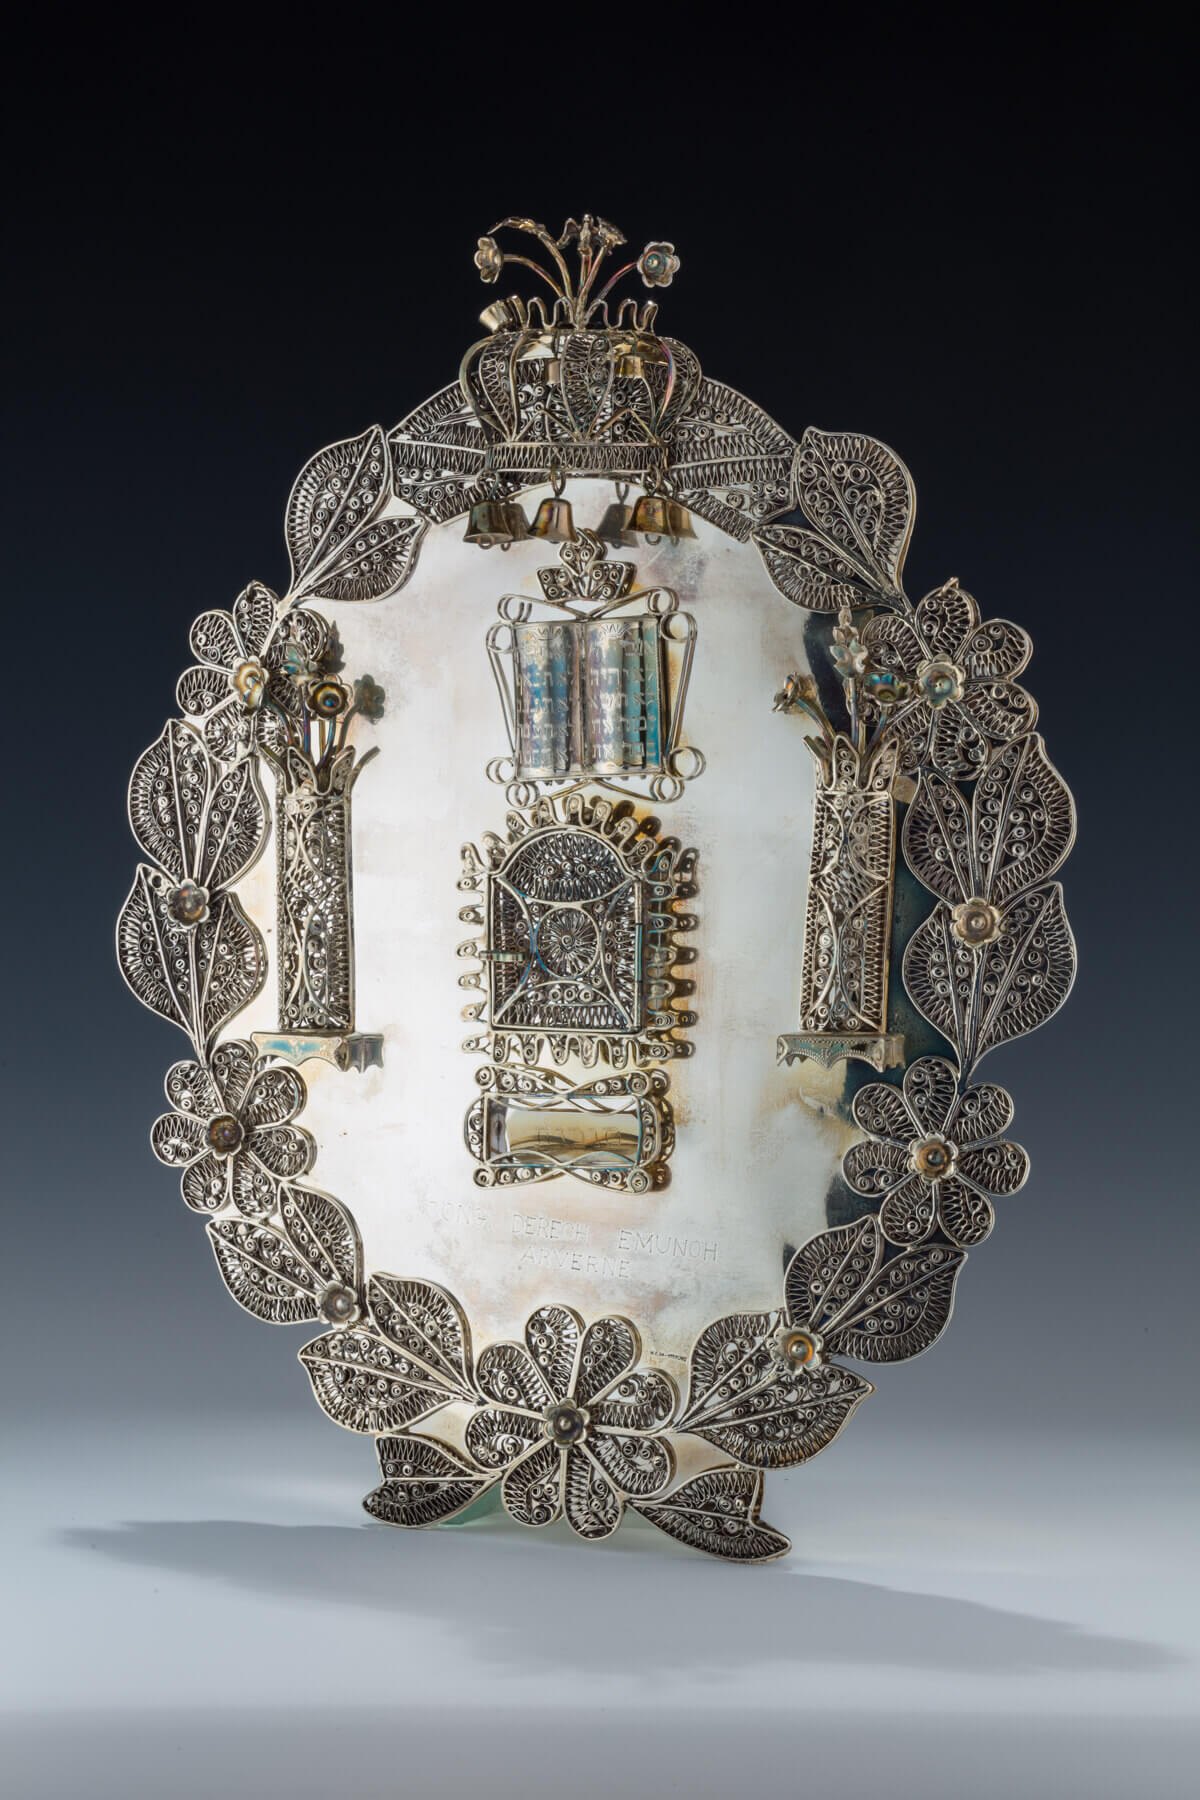 120. AN EXCEPTIONALLY LARGE STERLING SILVER TORAH SHIELD